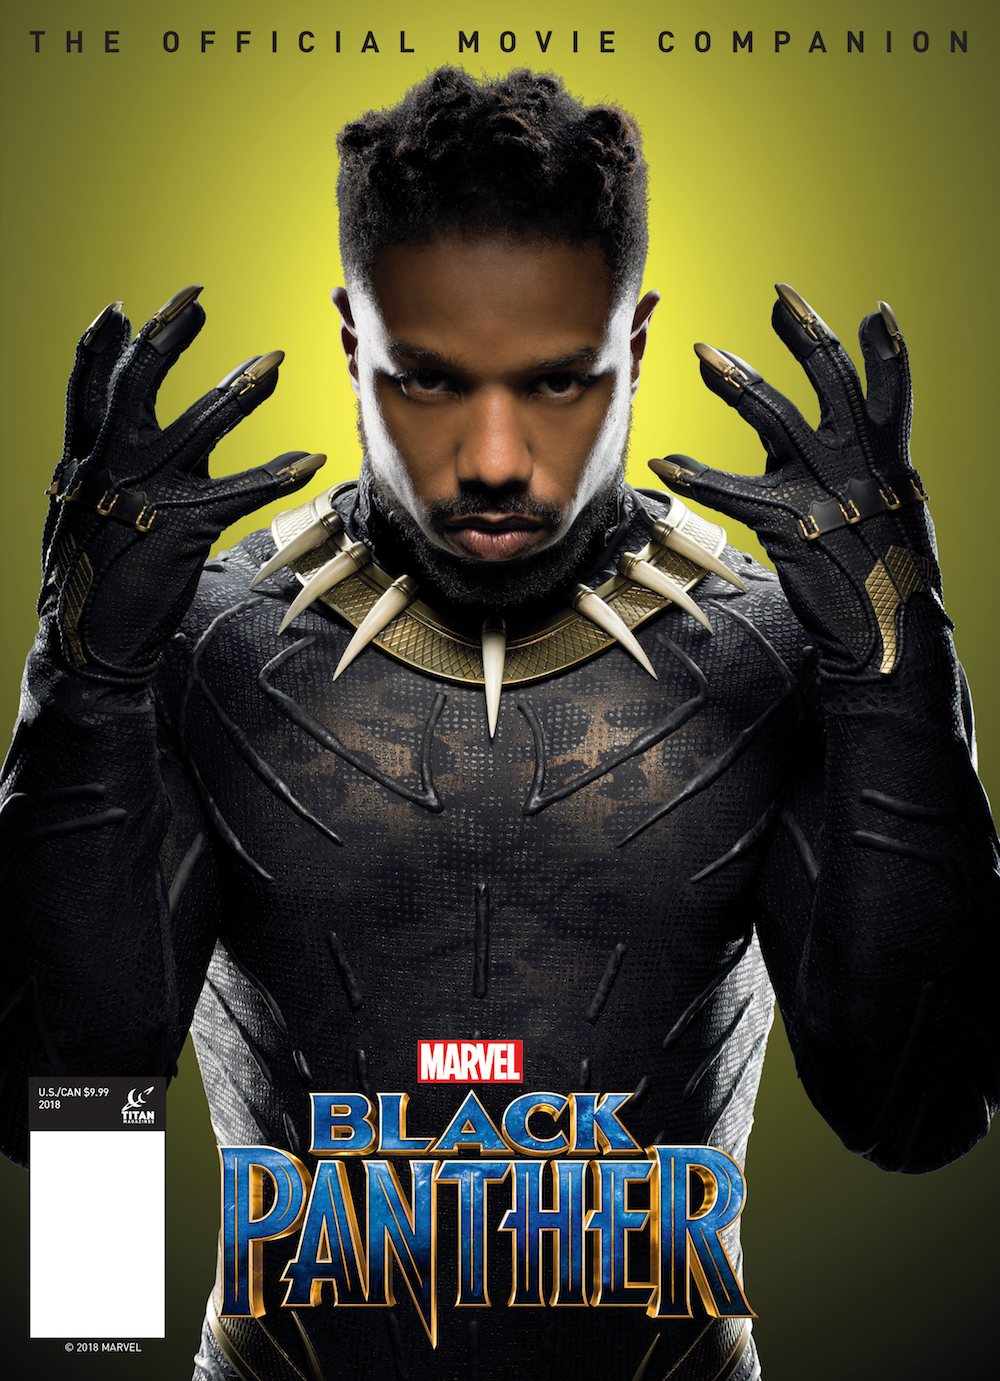 BLACK PANTHER OFFICIAL MOVIE COMPANION PX MAGAZINE